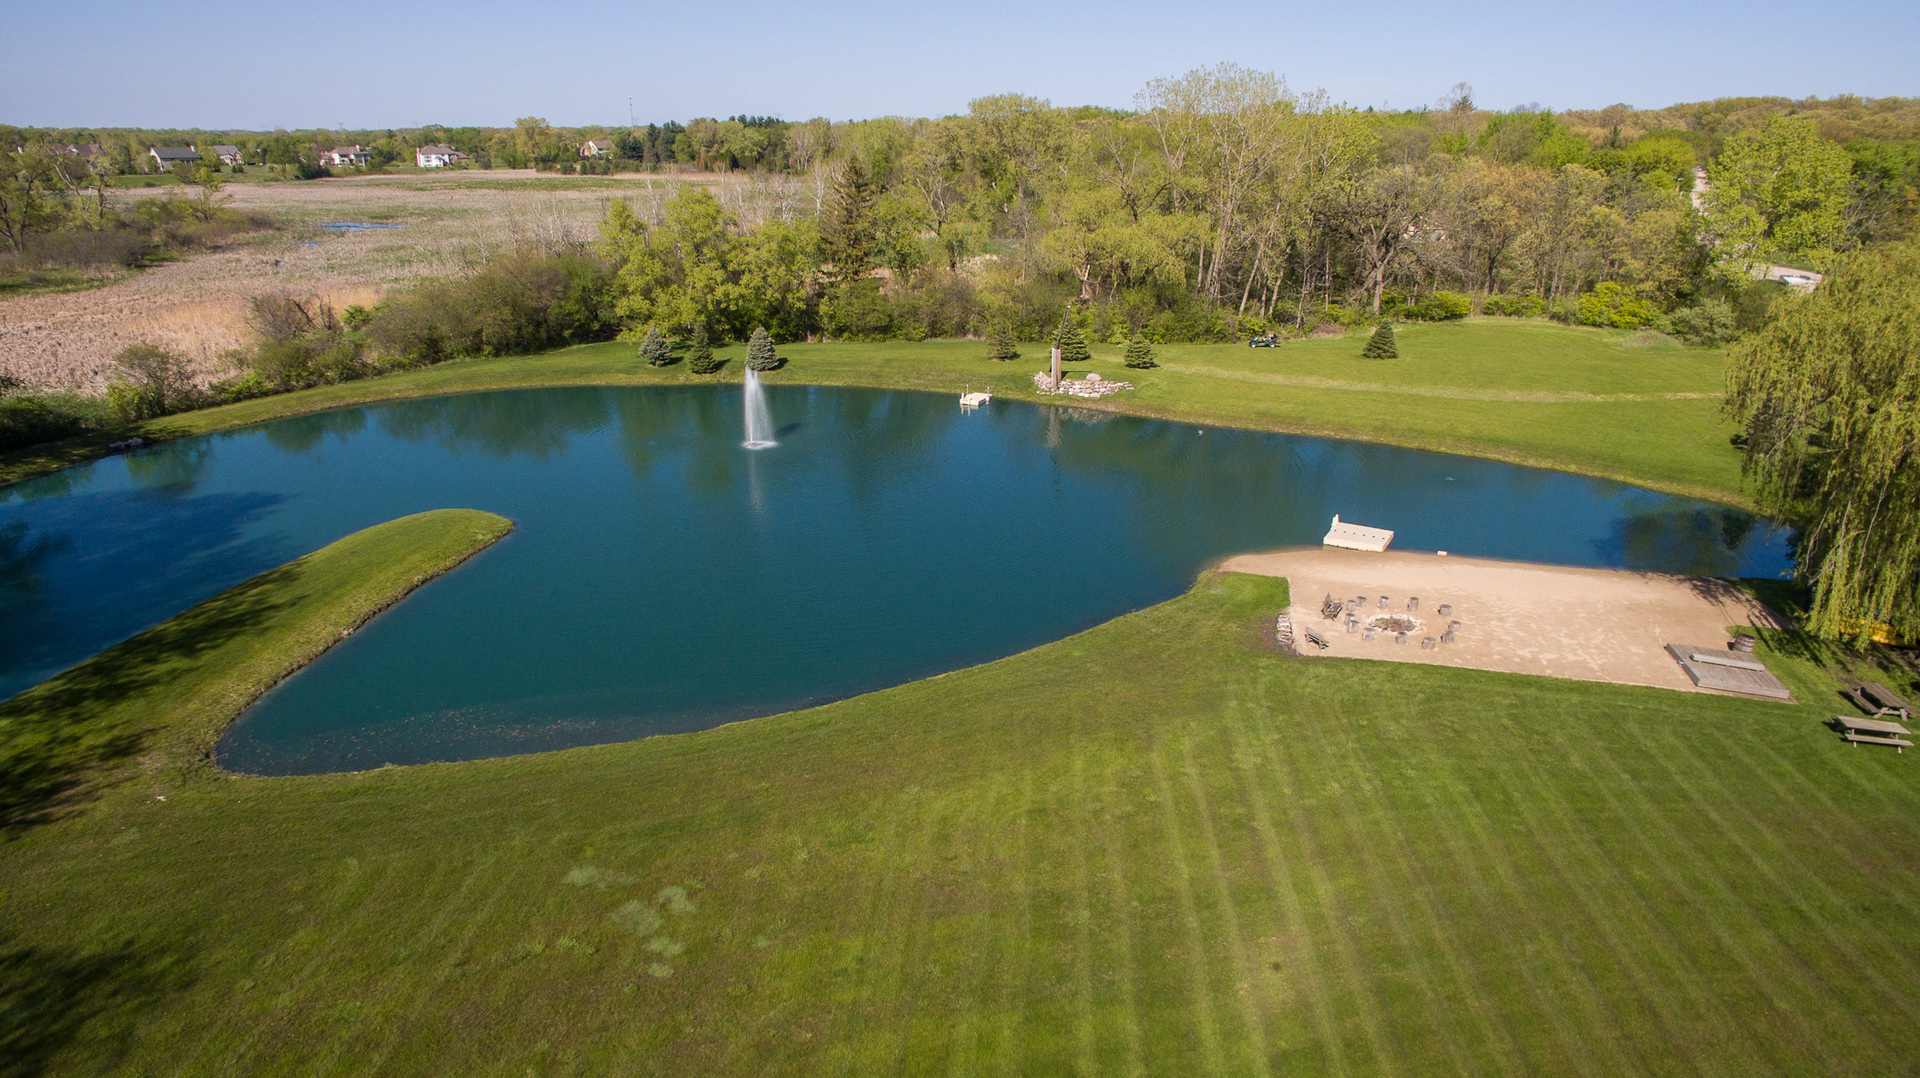 Acres Residential Land For Sale Mchenry County Il Land And Farm